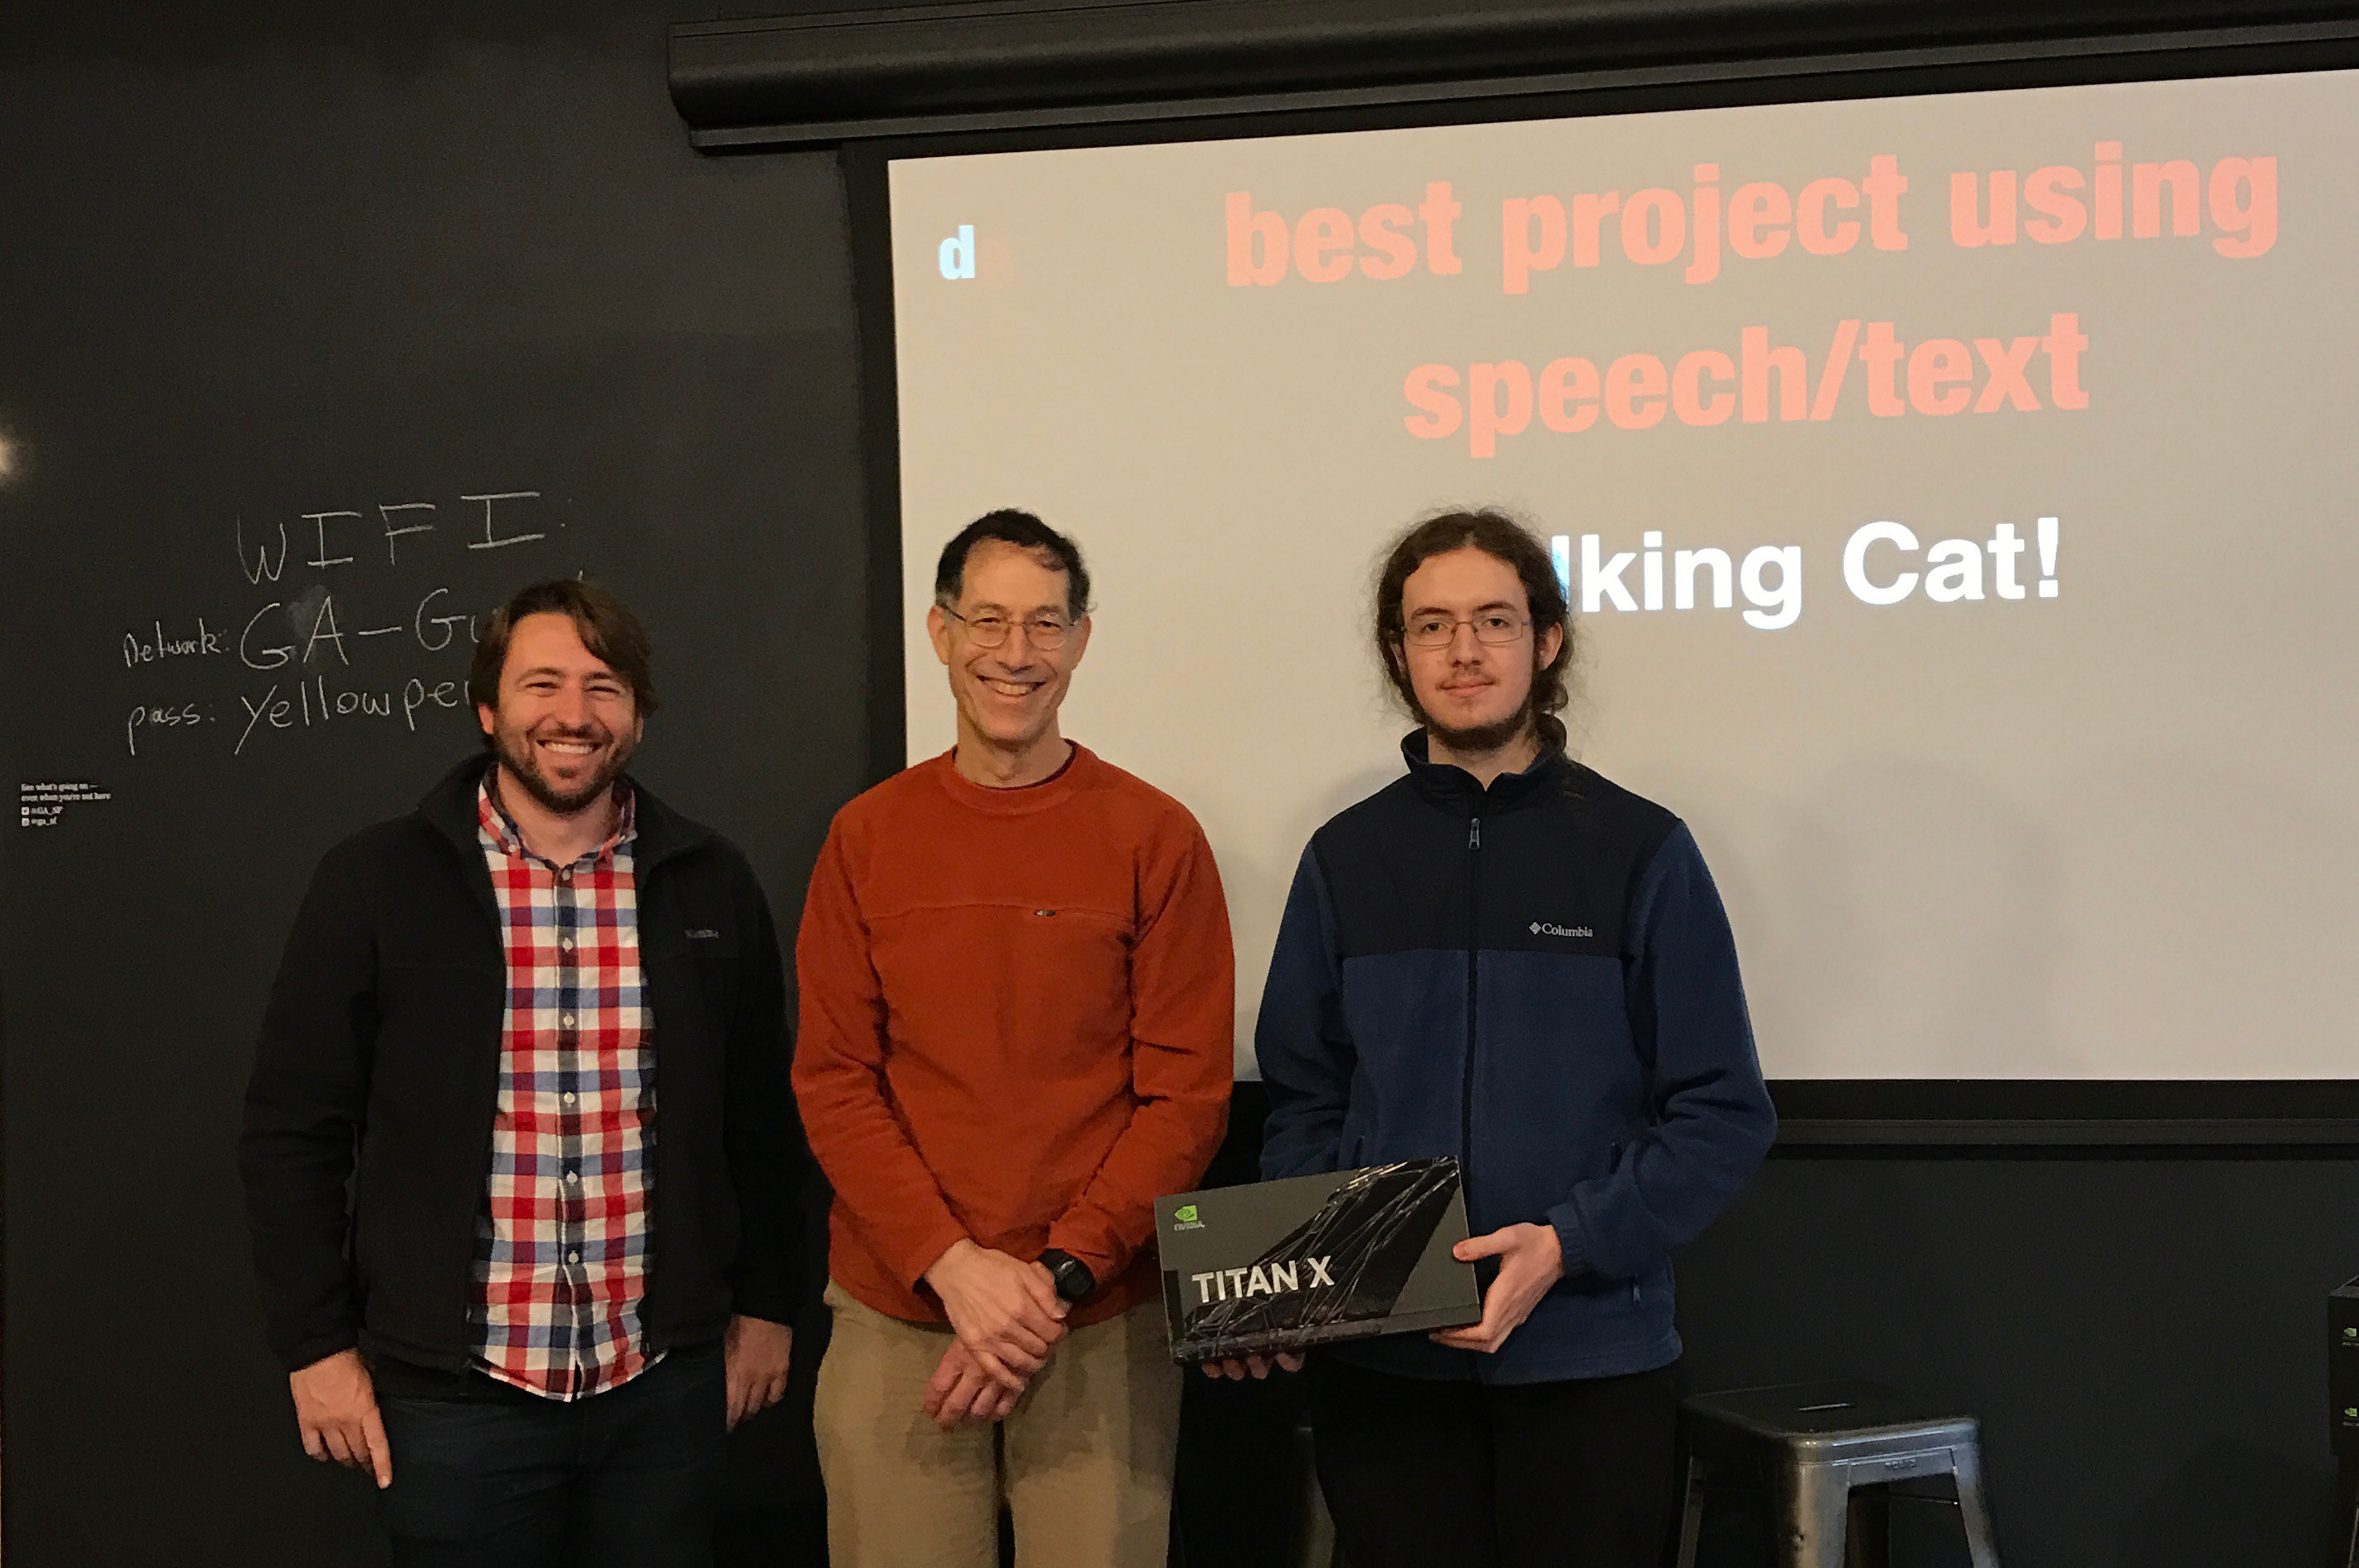 Tim Winning Best Project Using Speech